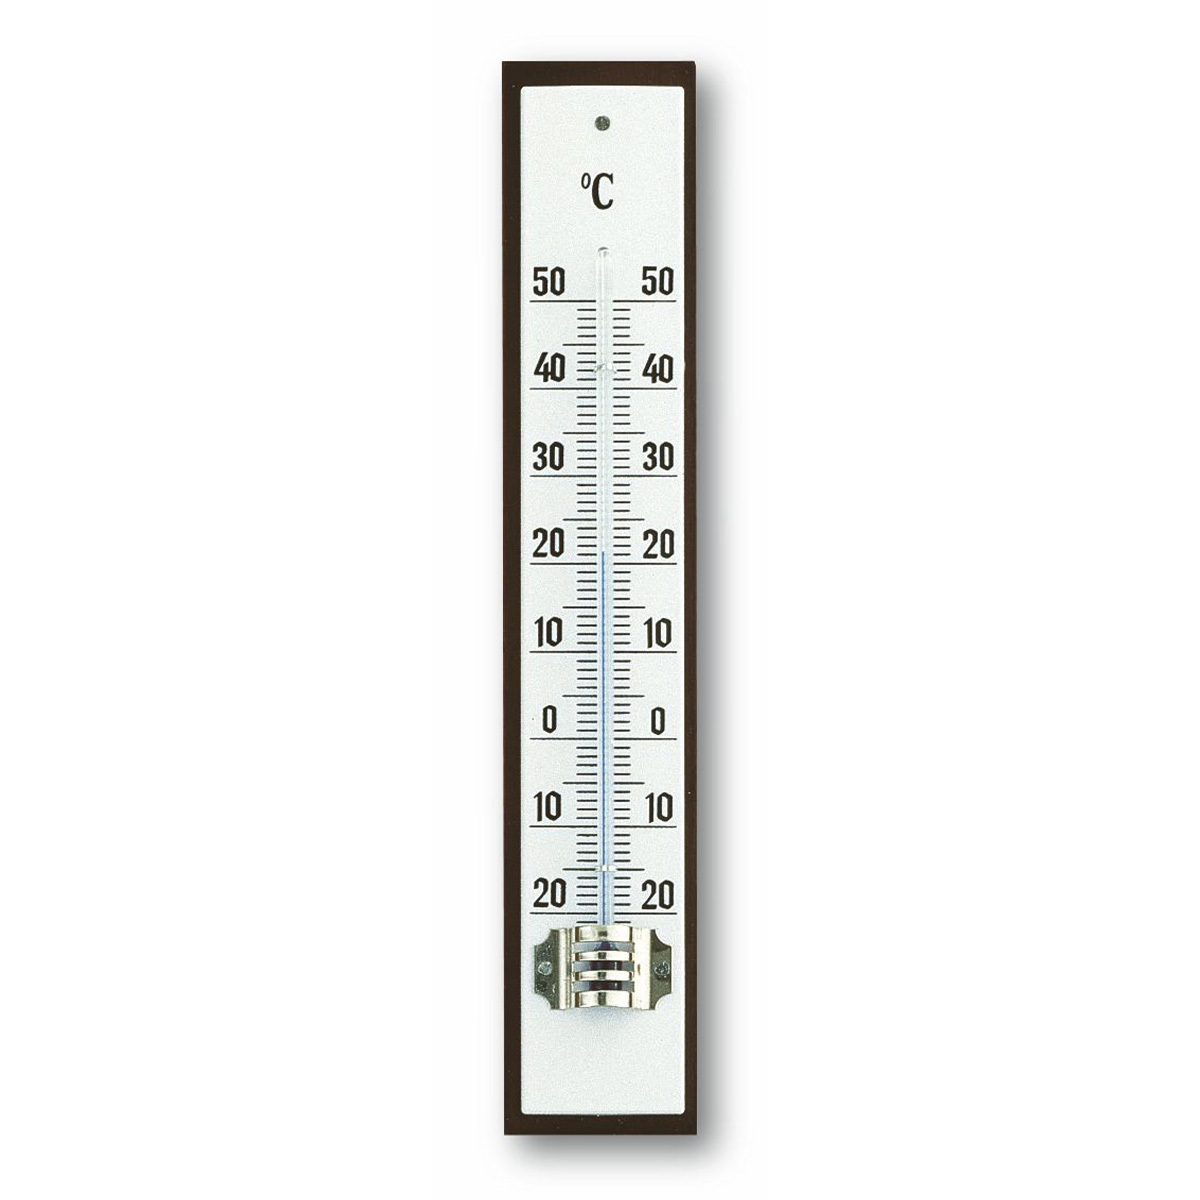 12-1011-analoges-innenthermometer-mahagoni-1200x1200px.jpg